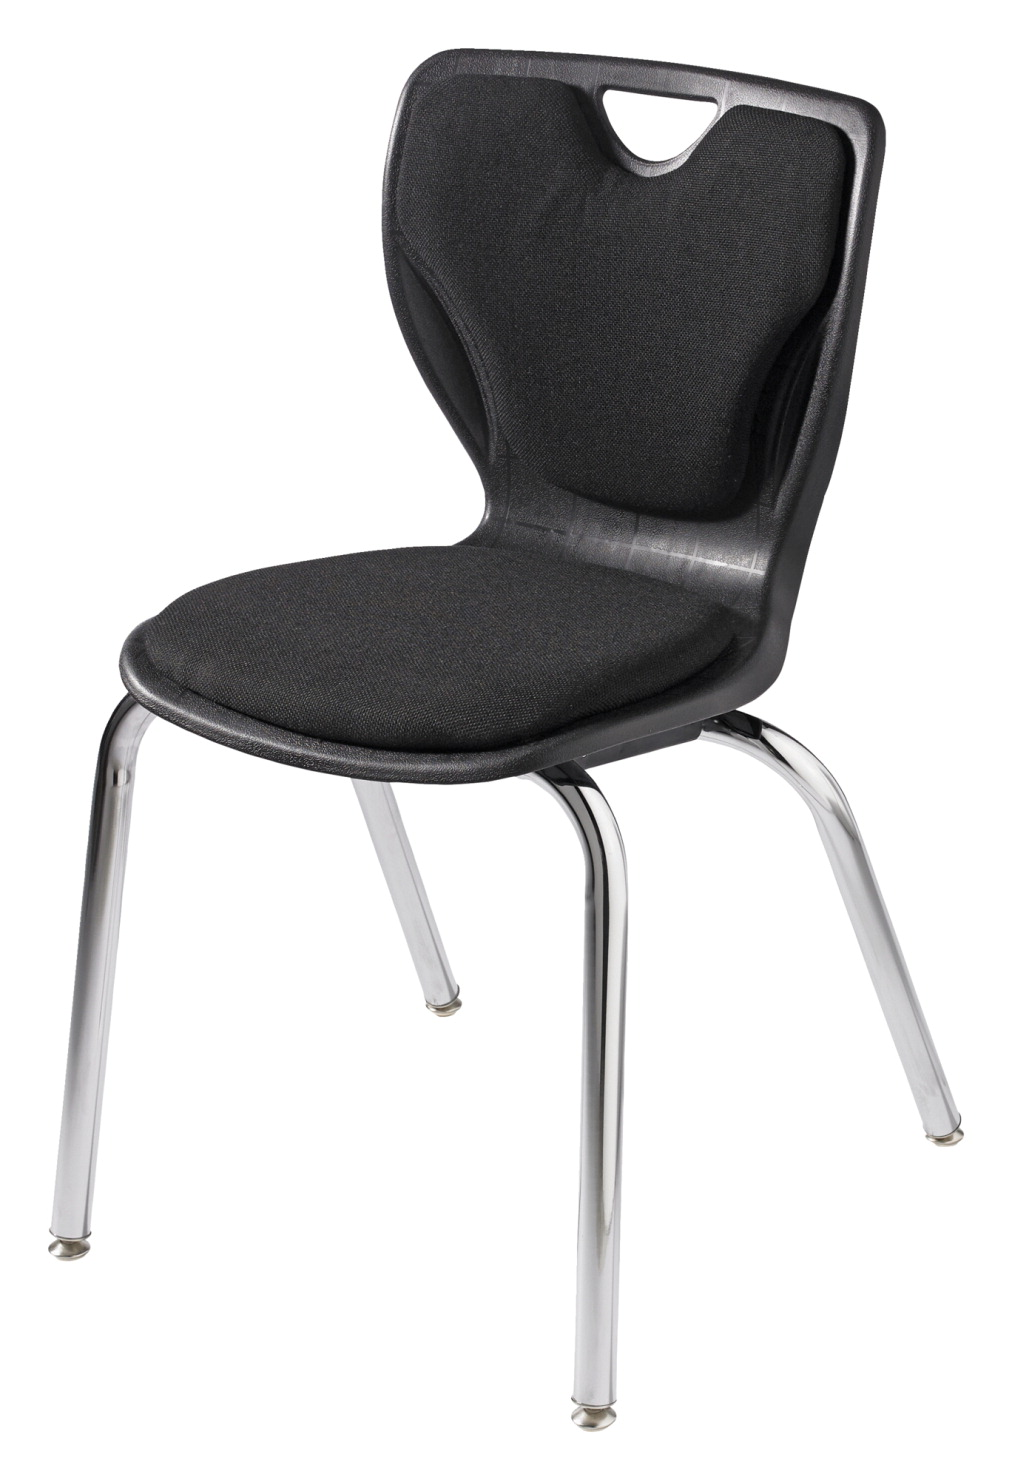 Classroom Select Contemporary Chair, Padded, 20 Inch A+ Seat Height, Chrome Frame, Various Options